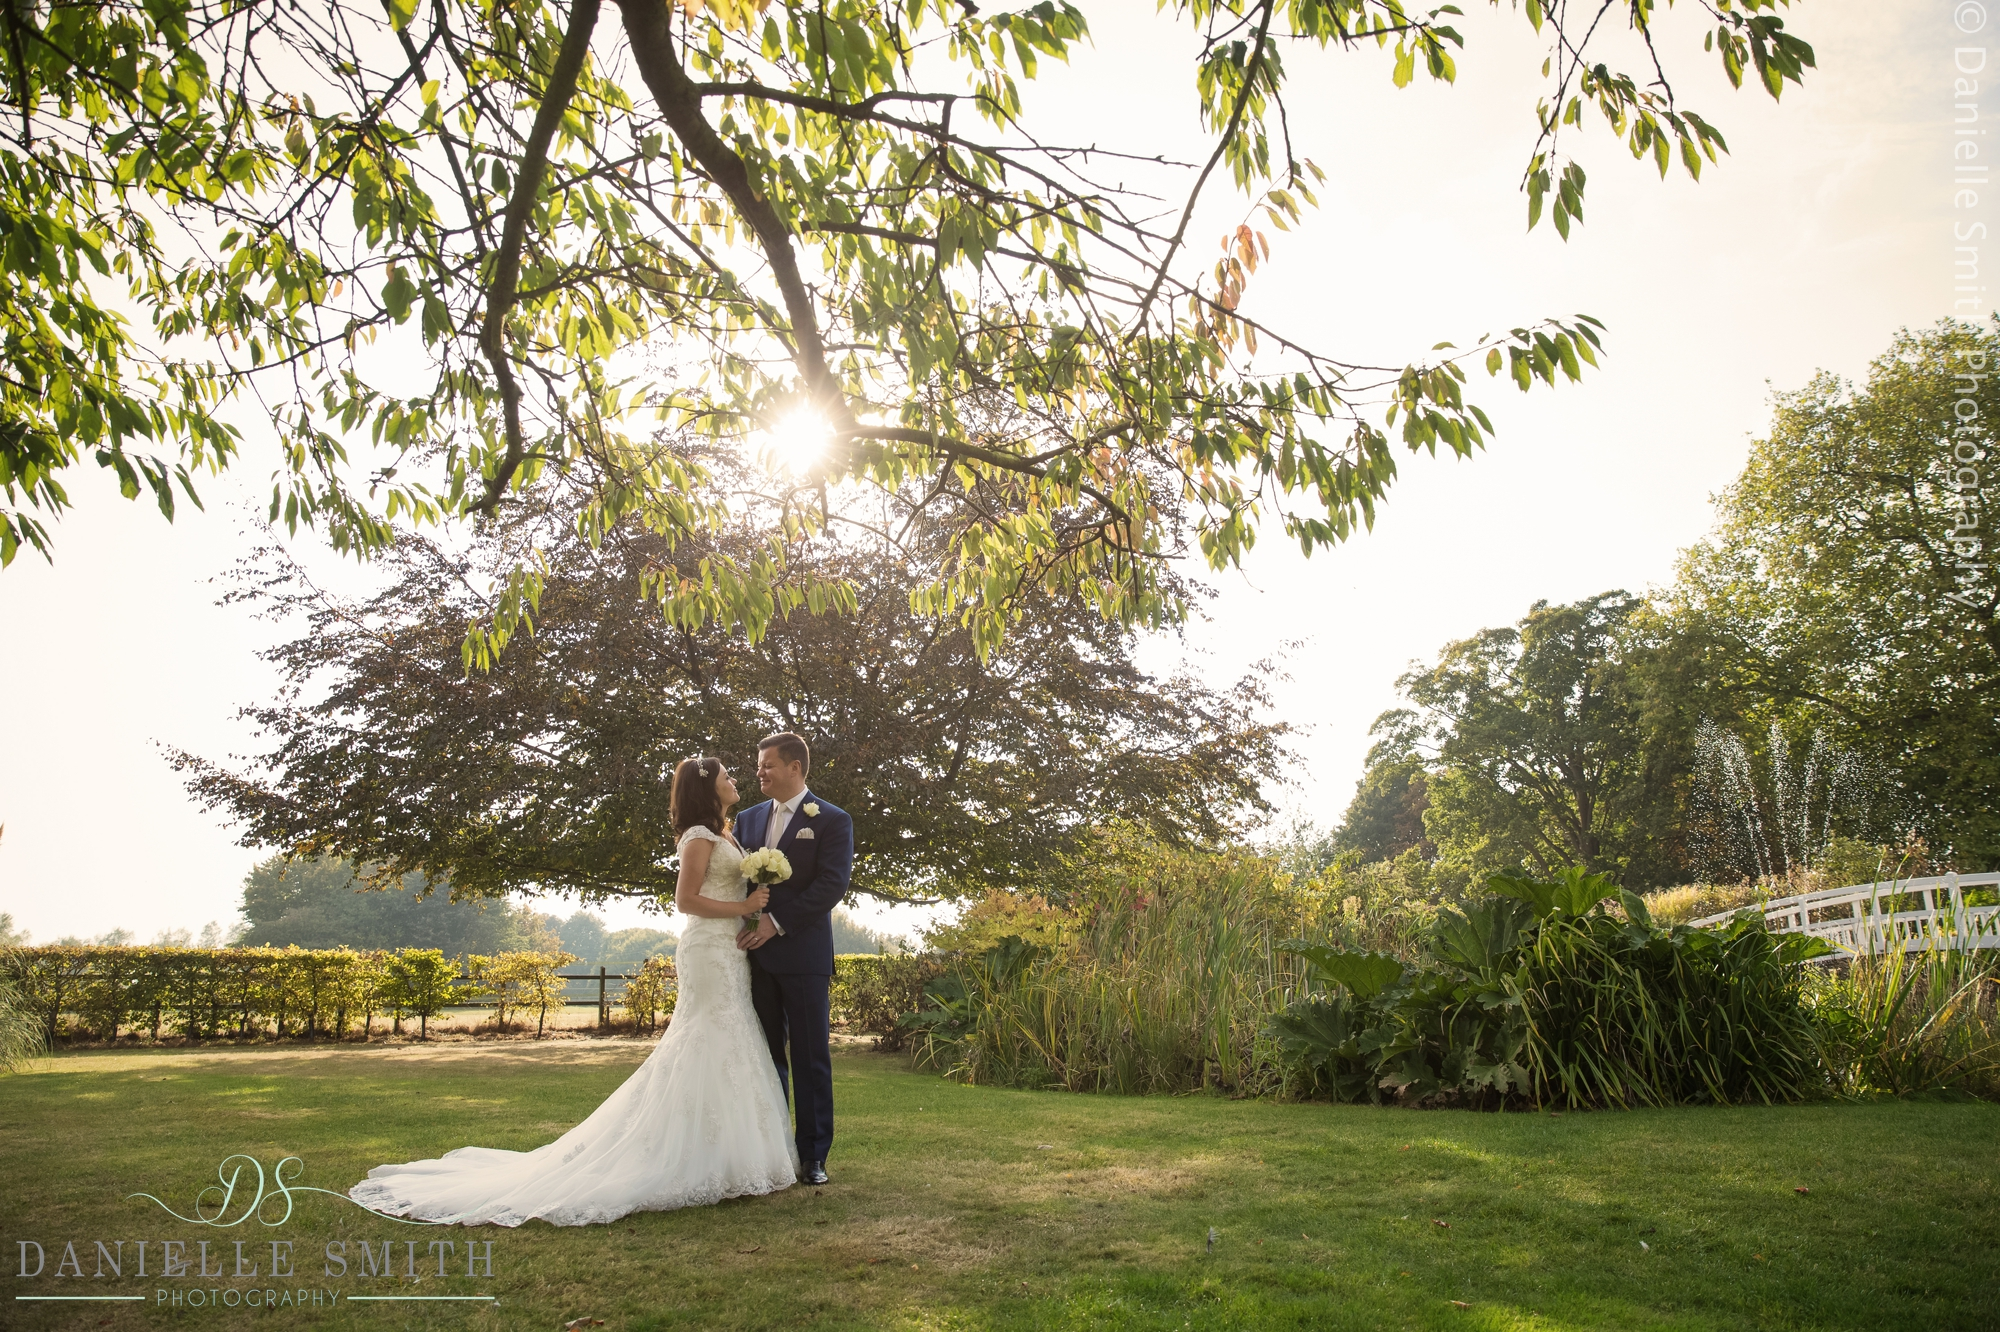 bride and groom under tree with sun coming through